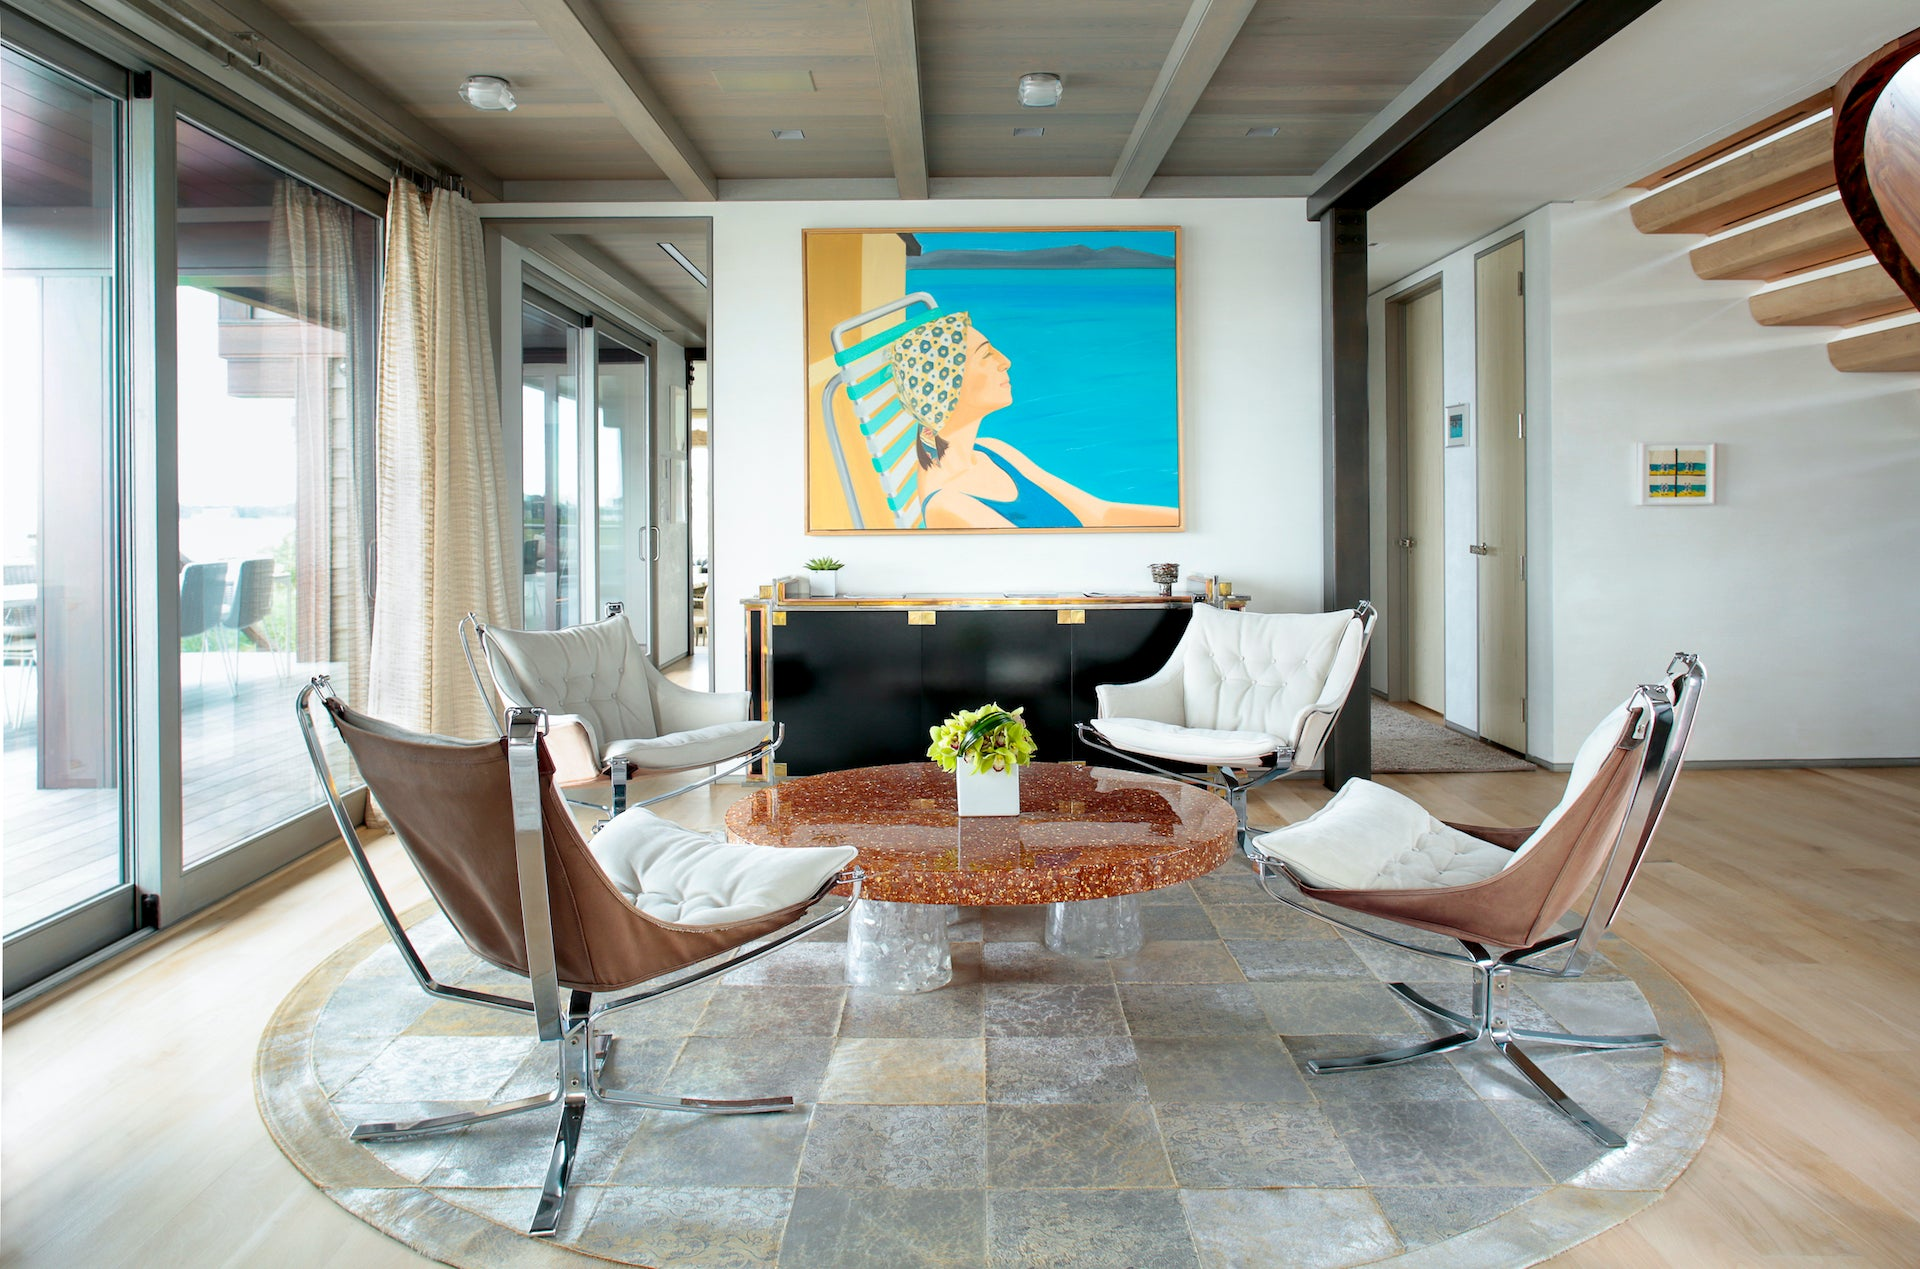 Dune Road Project by Ingrao, Inc. Photo © Ingrao, Inc.